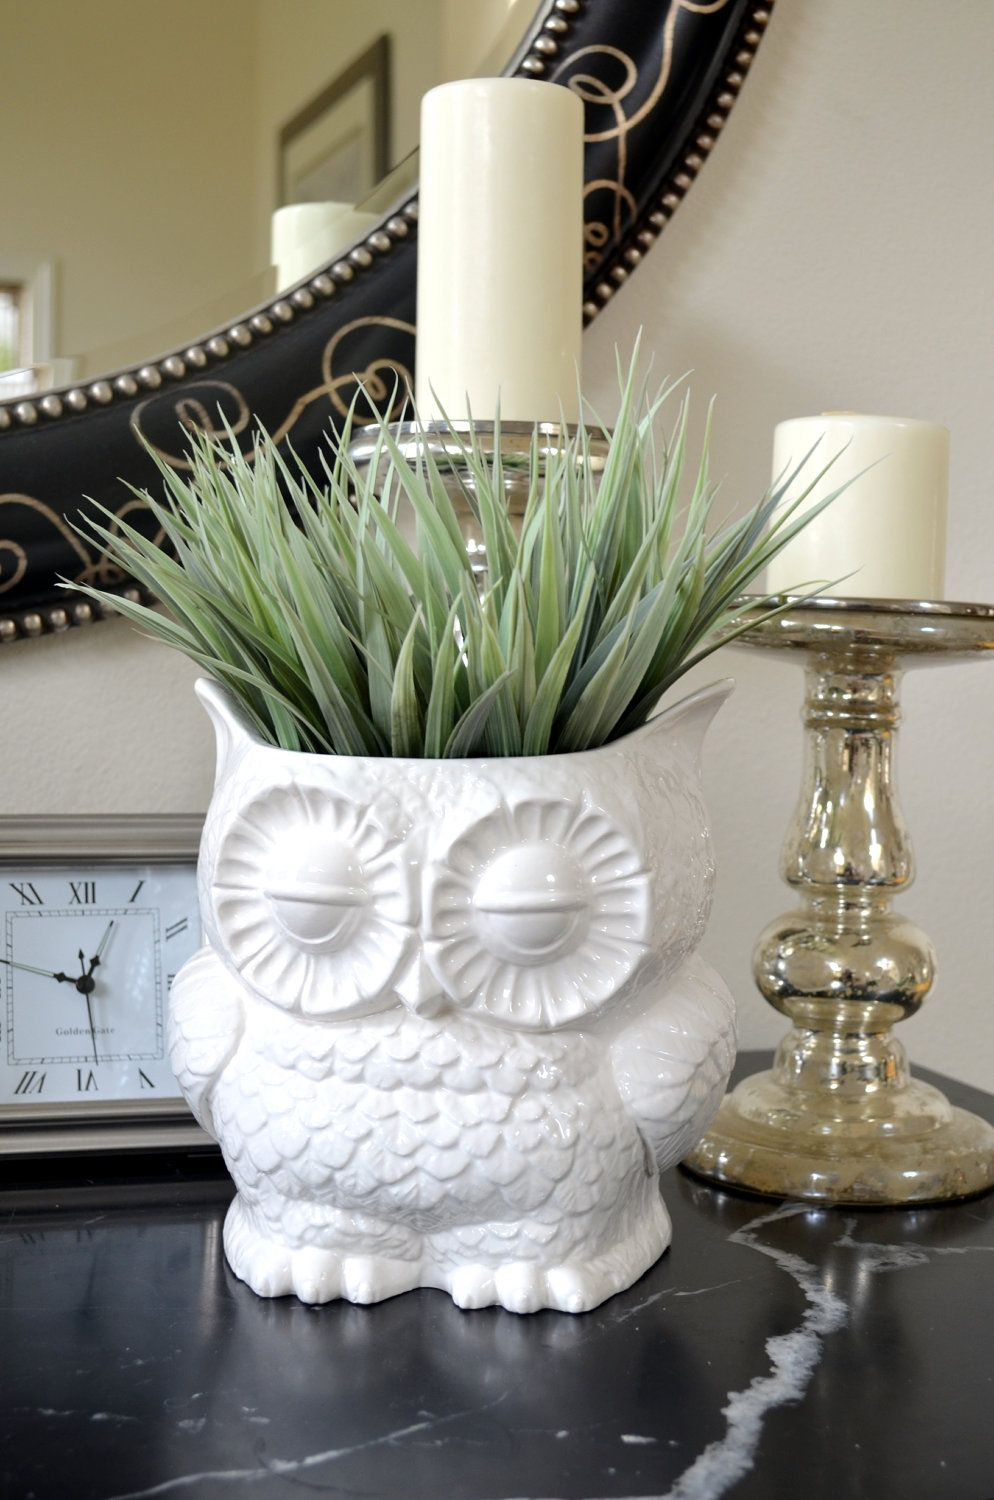 Delightful Vintage Ceramic White Owl Planter, Large. $49.00, Via Etsy.